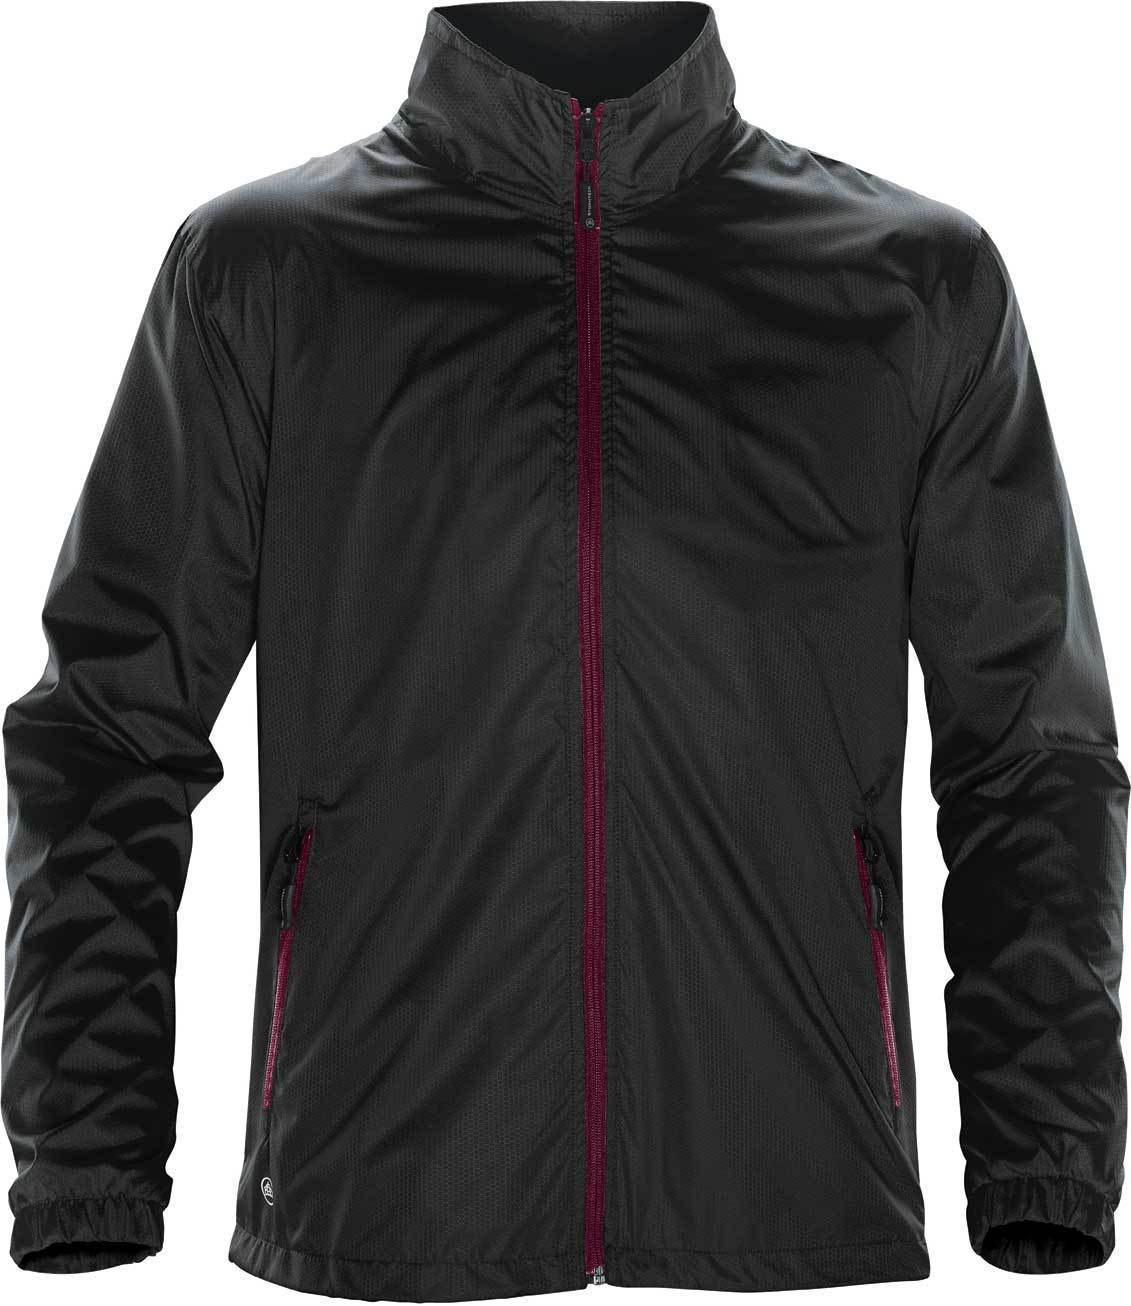 Stormtech GSX-1 JACKET - Inventory